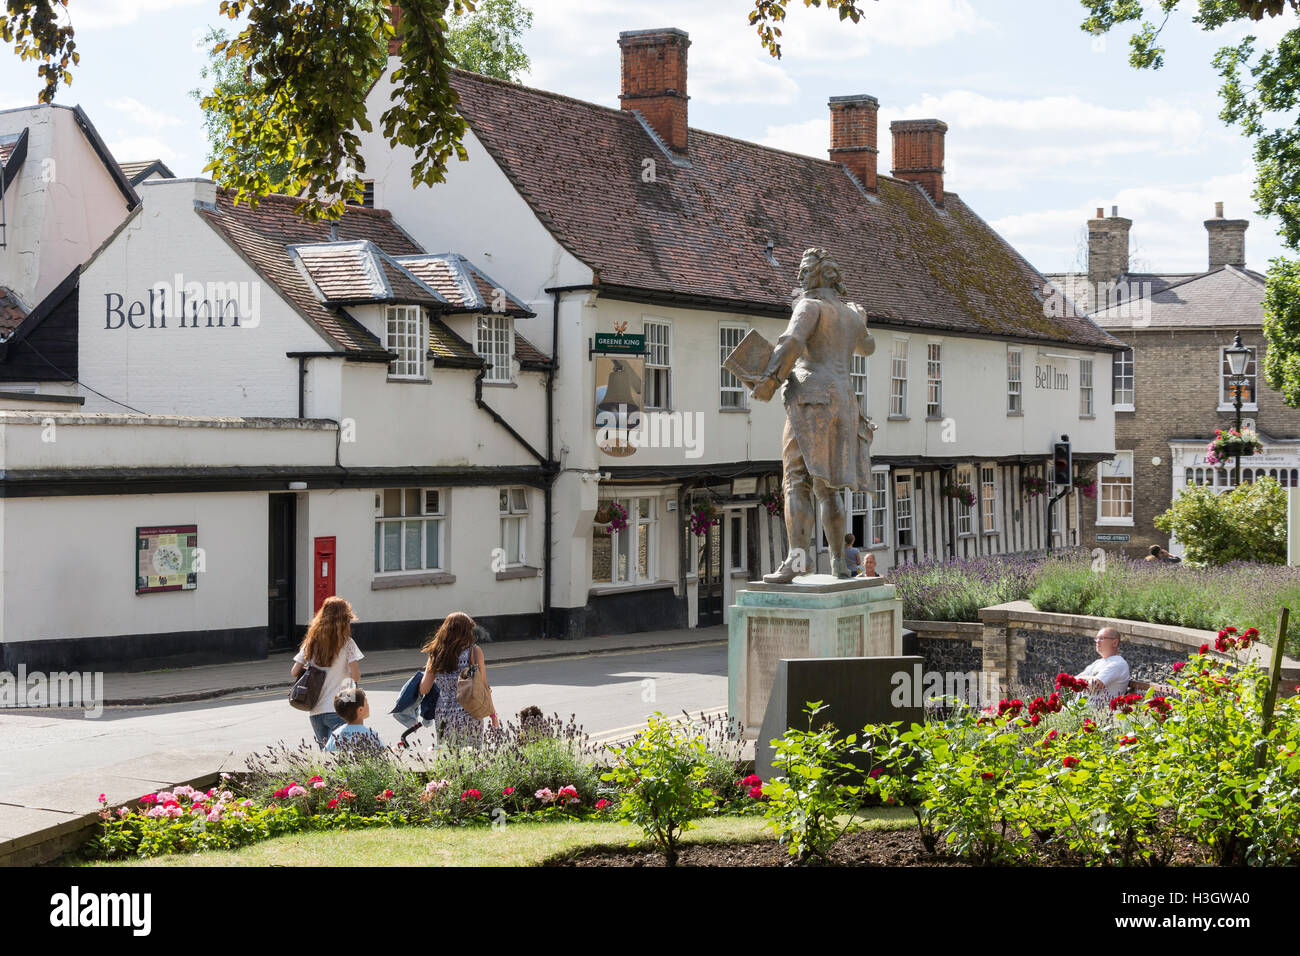 15th century The Bell Inn and Thomas Paine statue, King Street, Thetford, Norfolk, England, United Kingdom - Stock Image